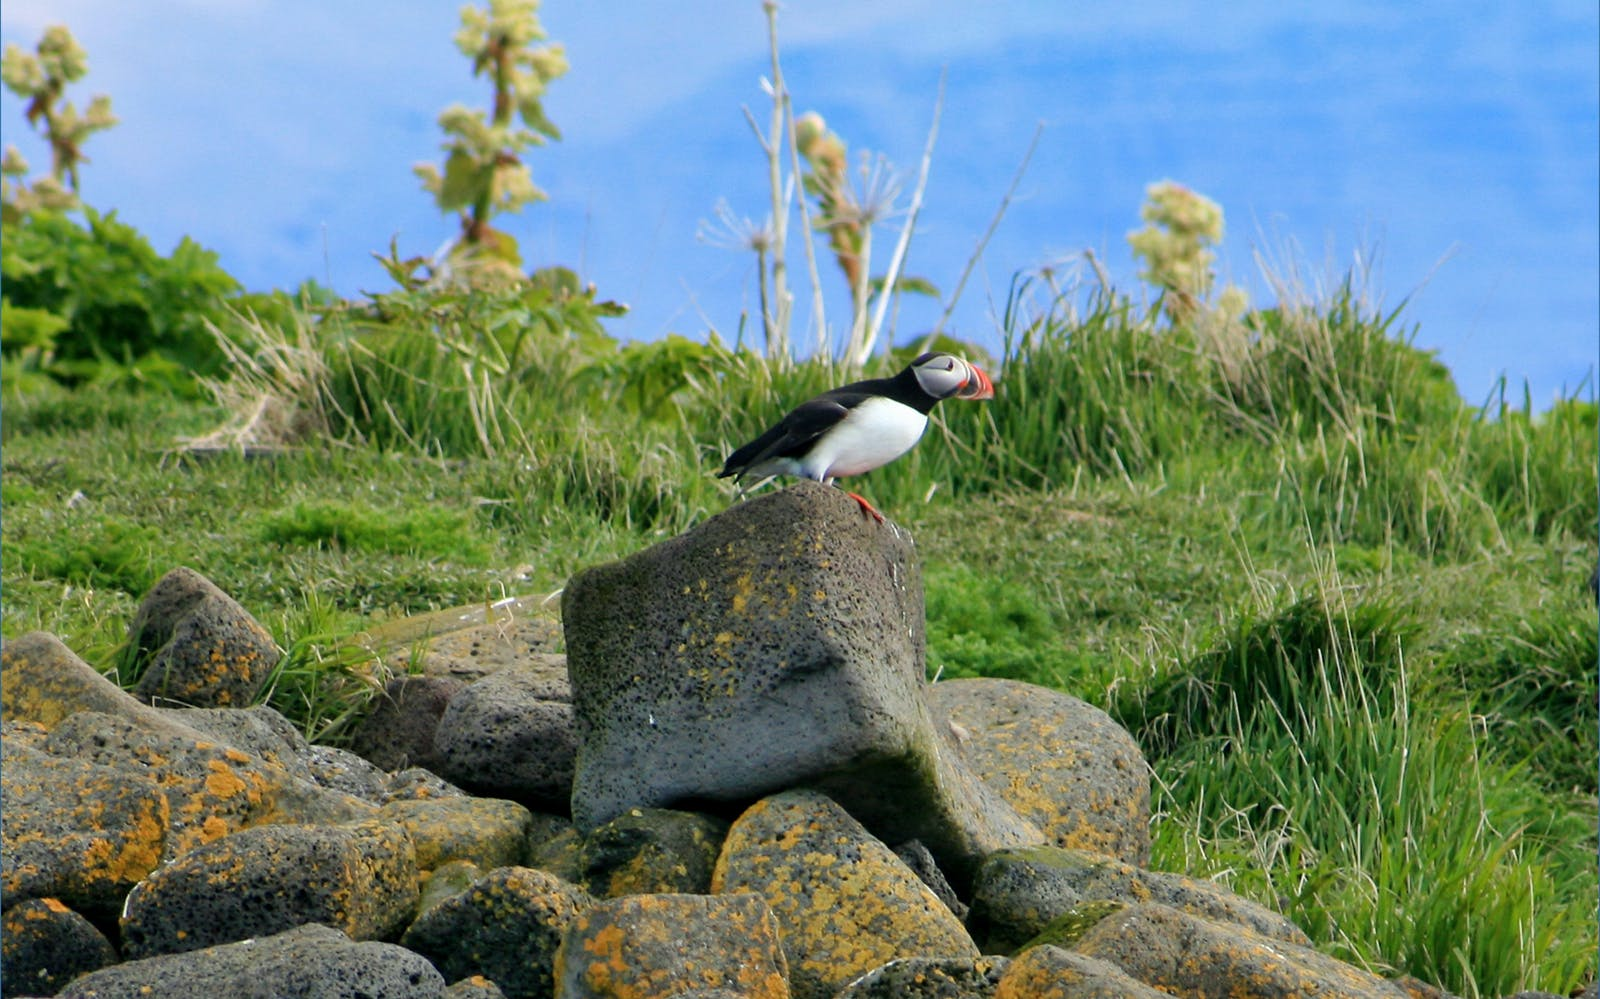 puffin watching tour off the reykjavik coast-2